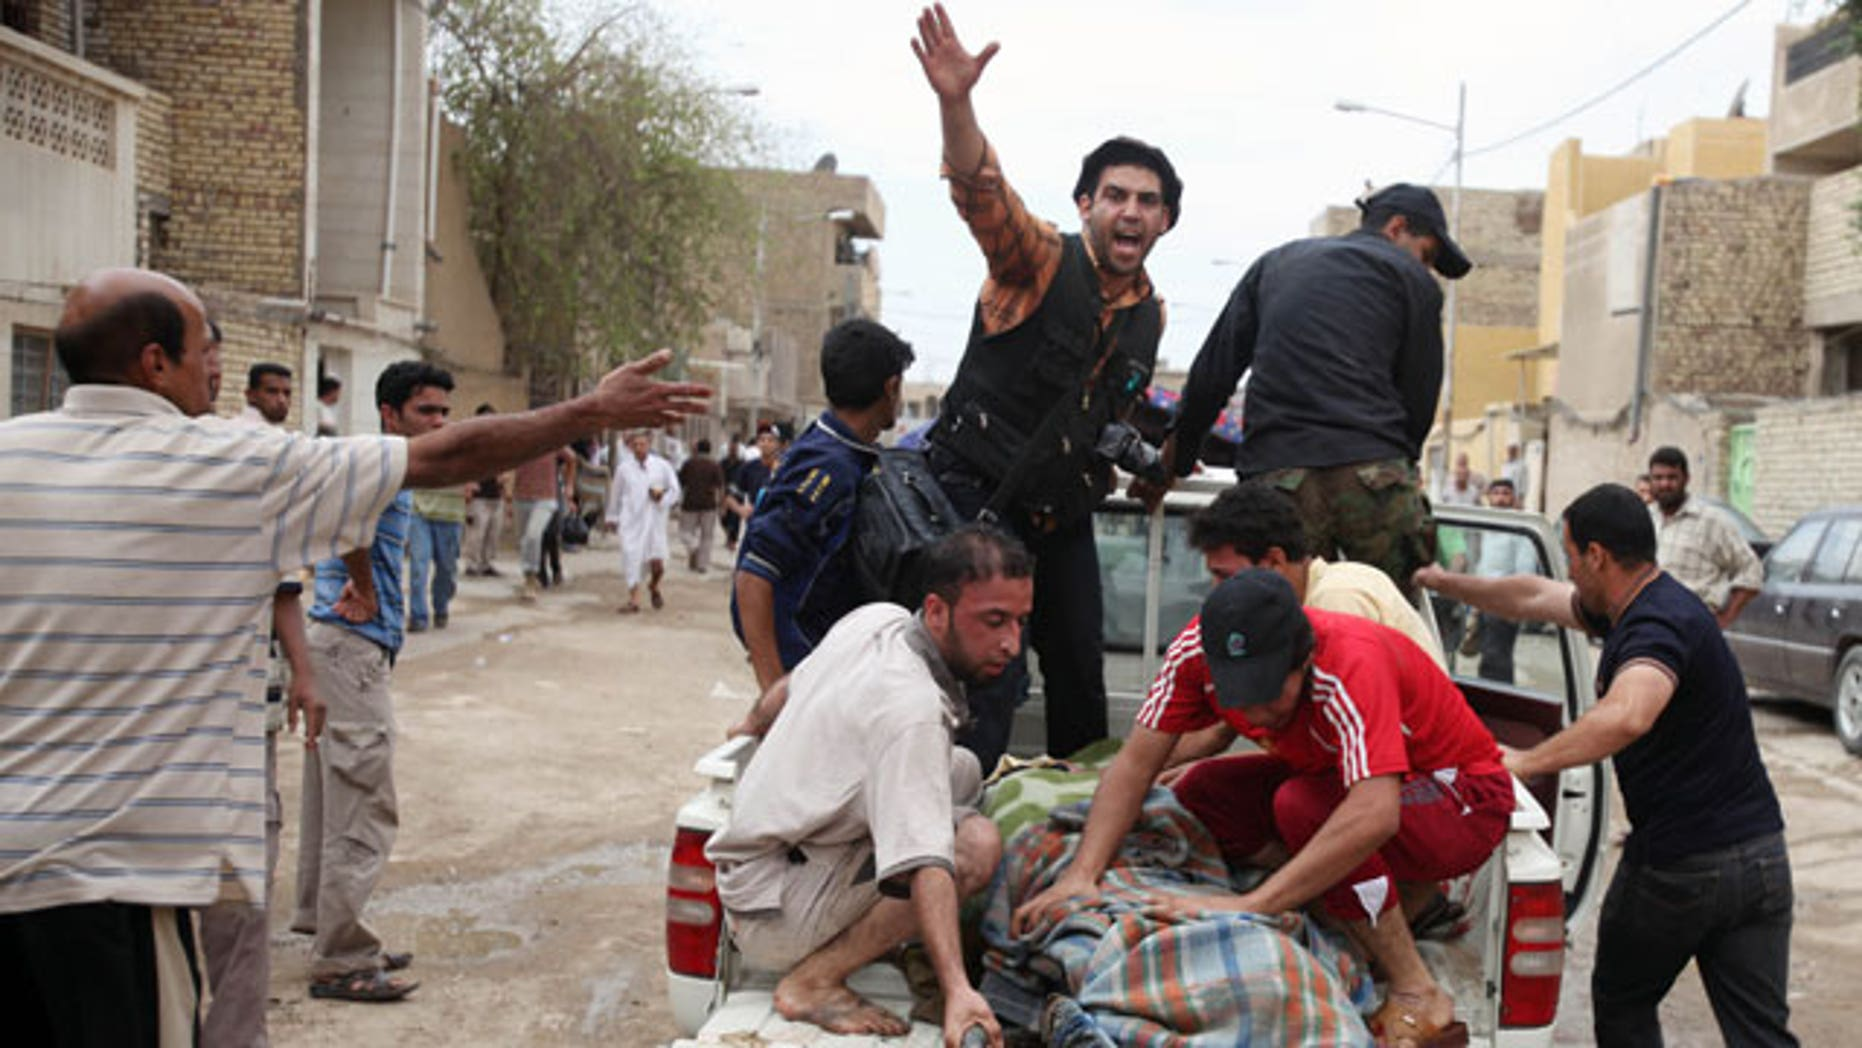 A victim is evacuated after a series of bombs exploded in the Shiite stronghold of Sadr City in Baghdad, Iraq, Friday, April 23, 2010. Iraqi officials say several people were killed when a series of bombs targeted the Sadrist offices. The bombings appeared to be targeting worshippers on their way to and from Friday afternoon prayers.